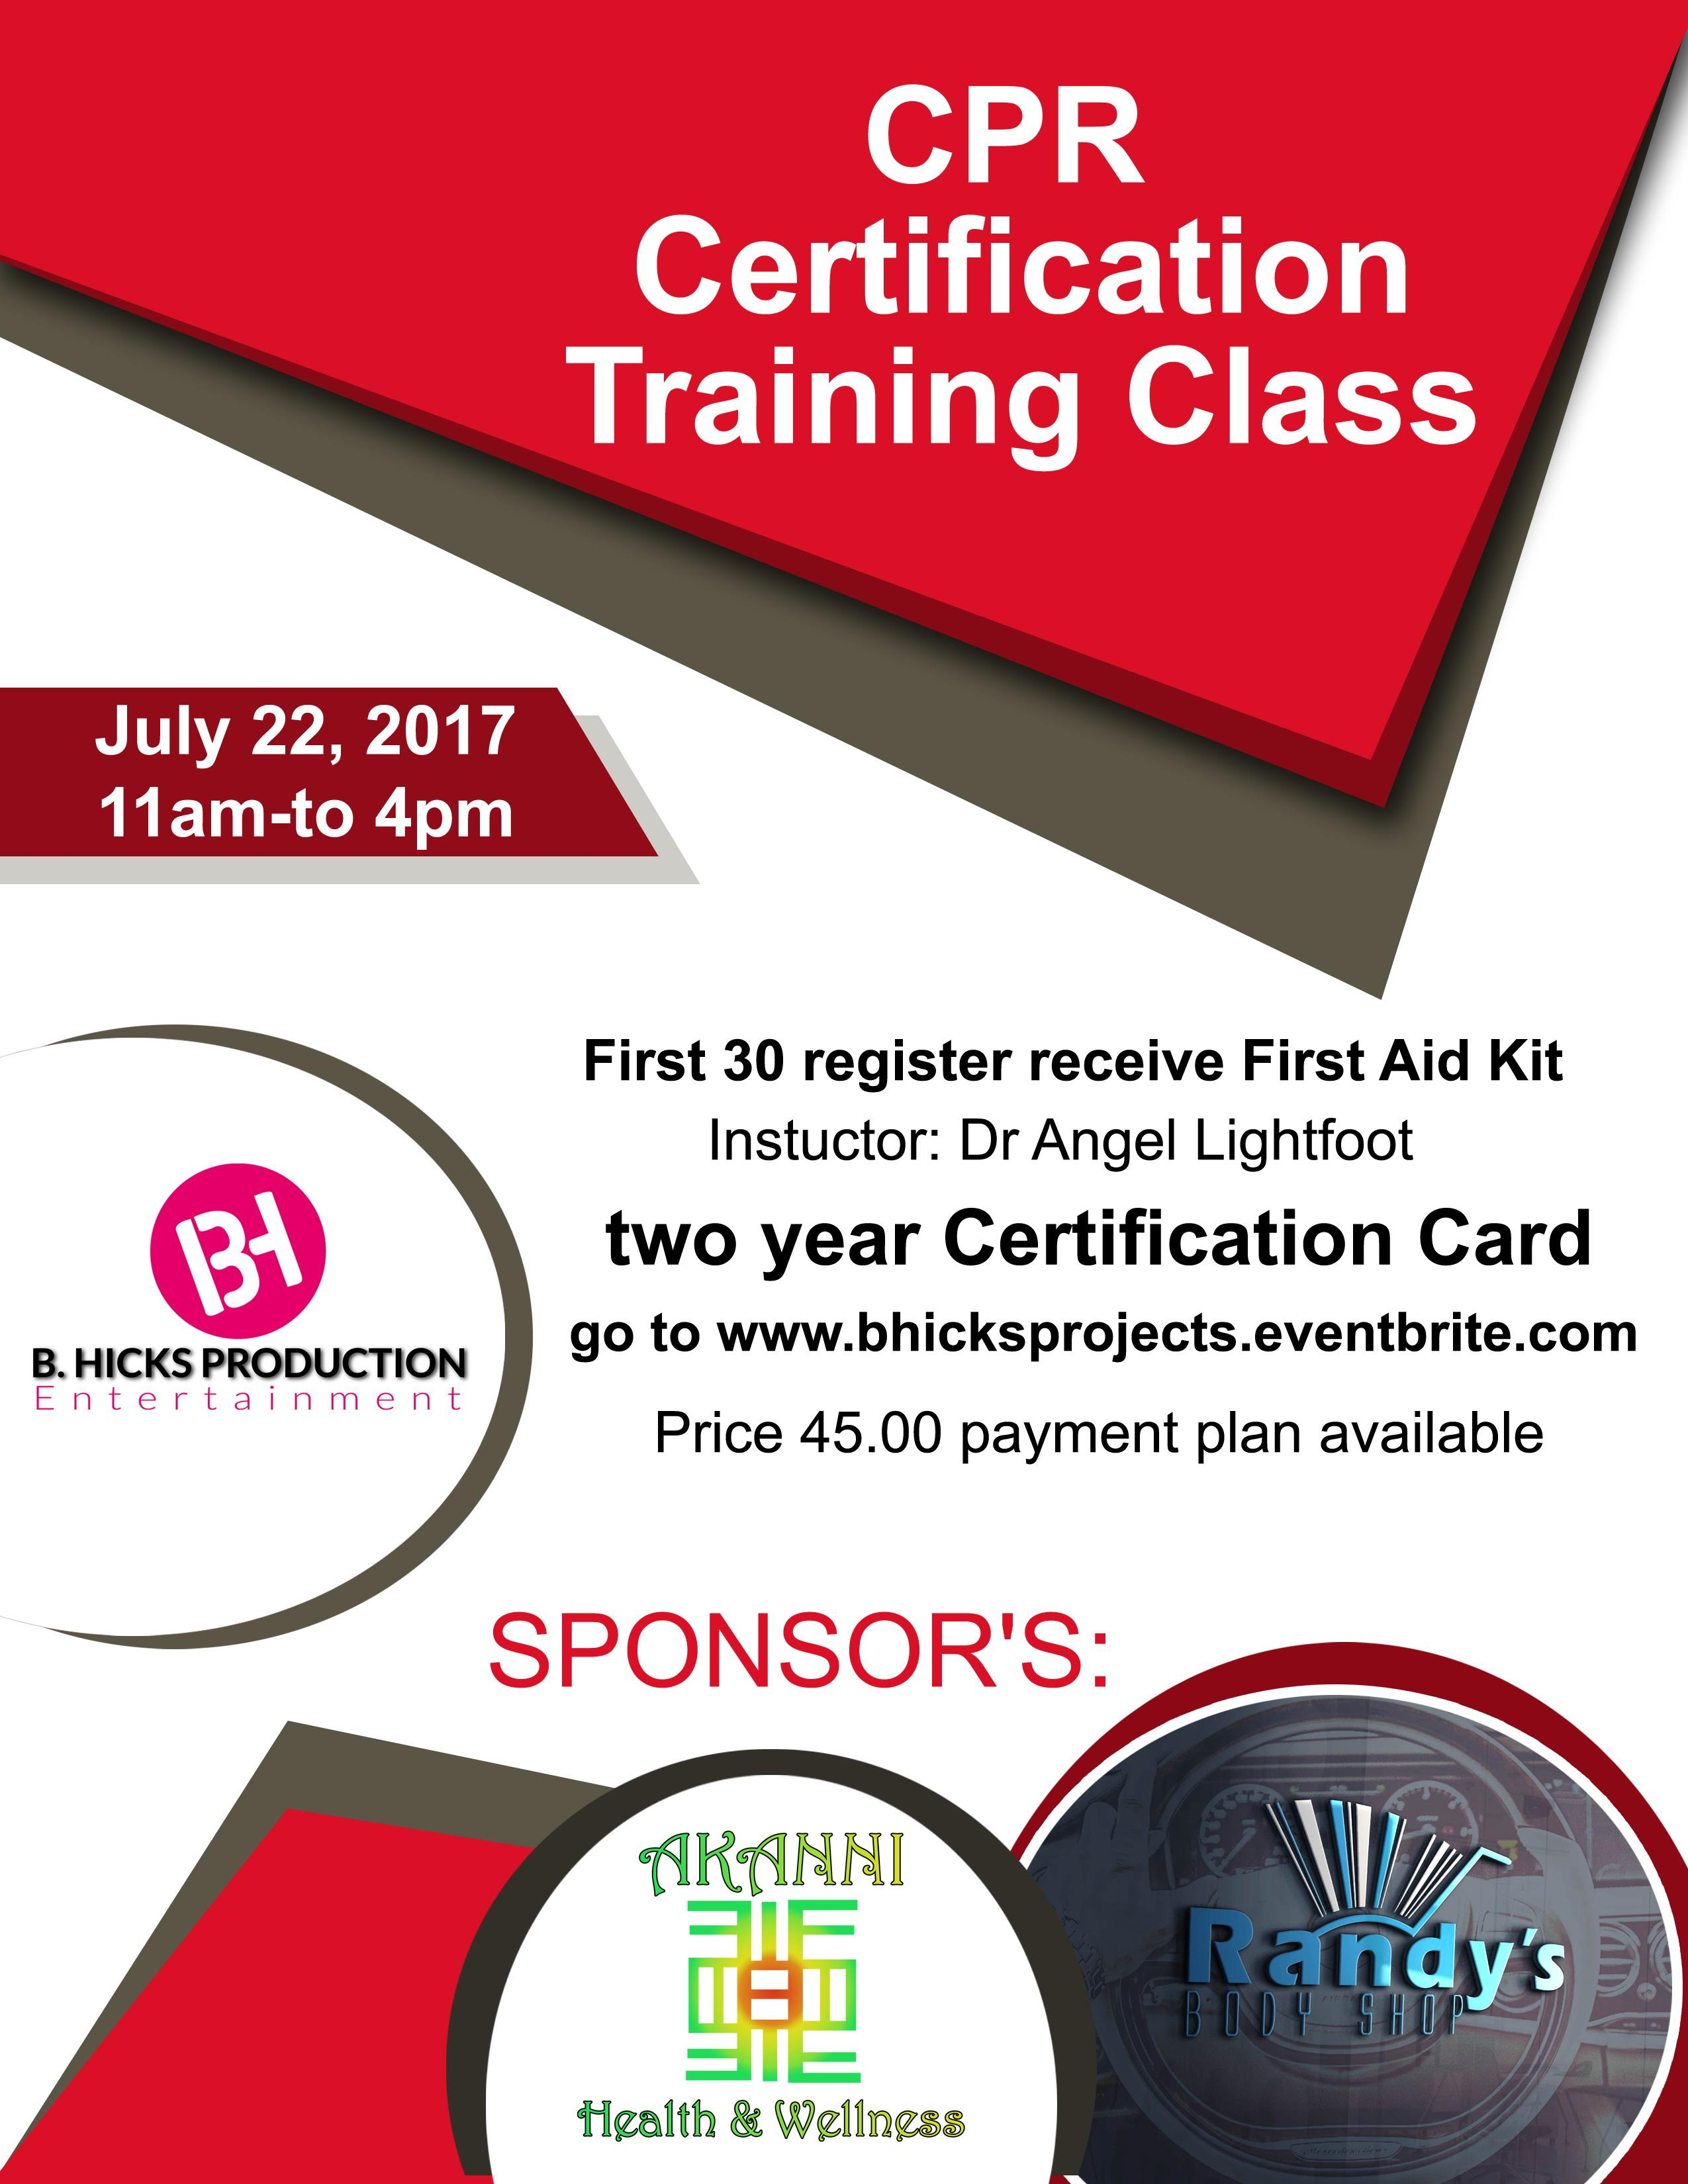 Cpr certification class 3003 nw 207th st miami gardens 22 jul cpr certification class xflitez Image collections